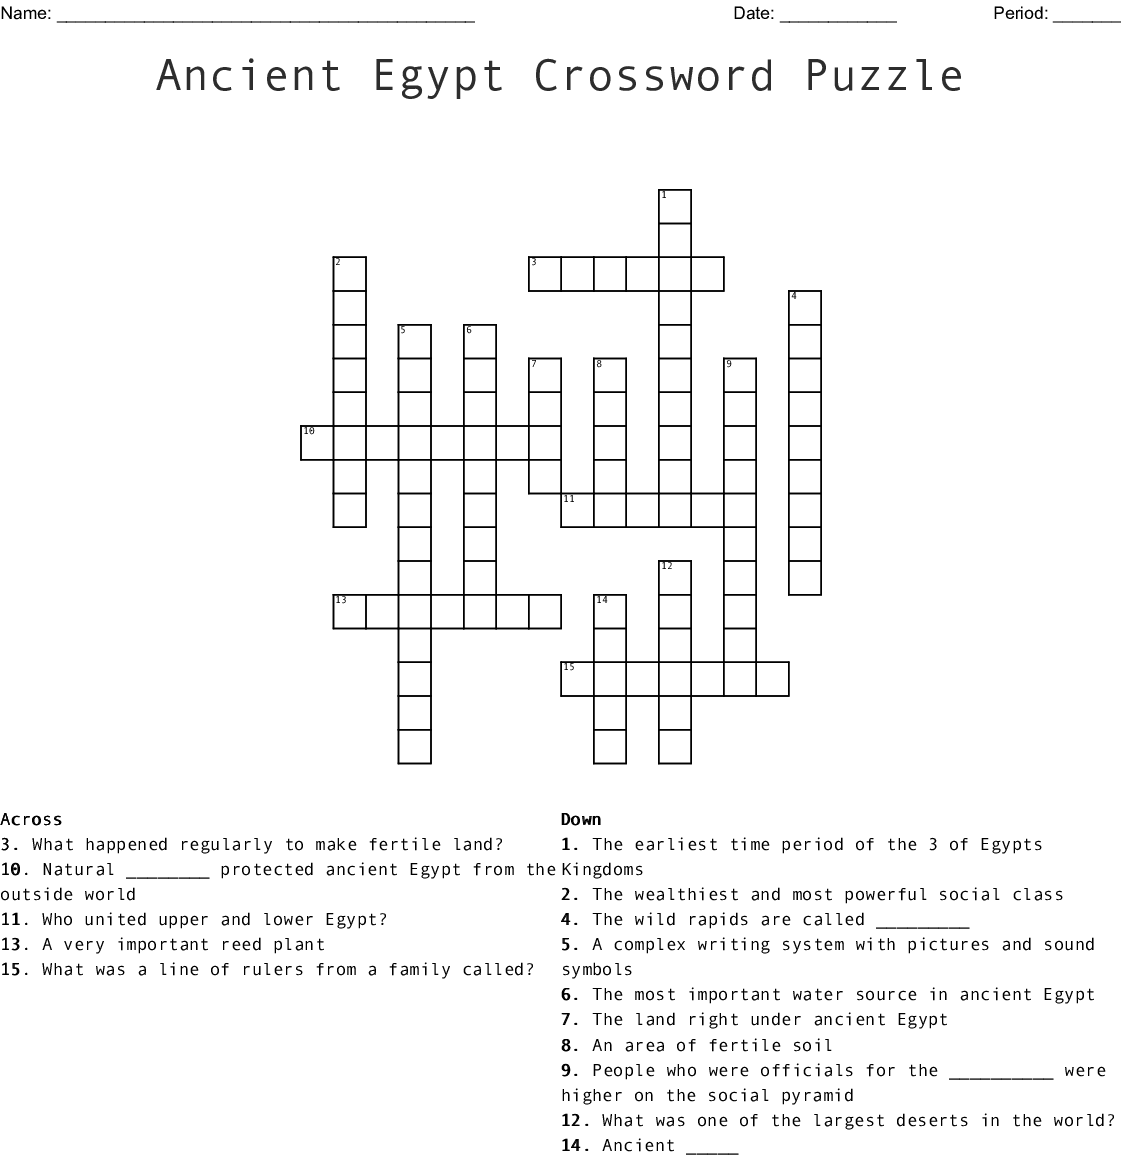 Geography of Ancient Egypt Crossword - WordMint